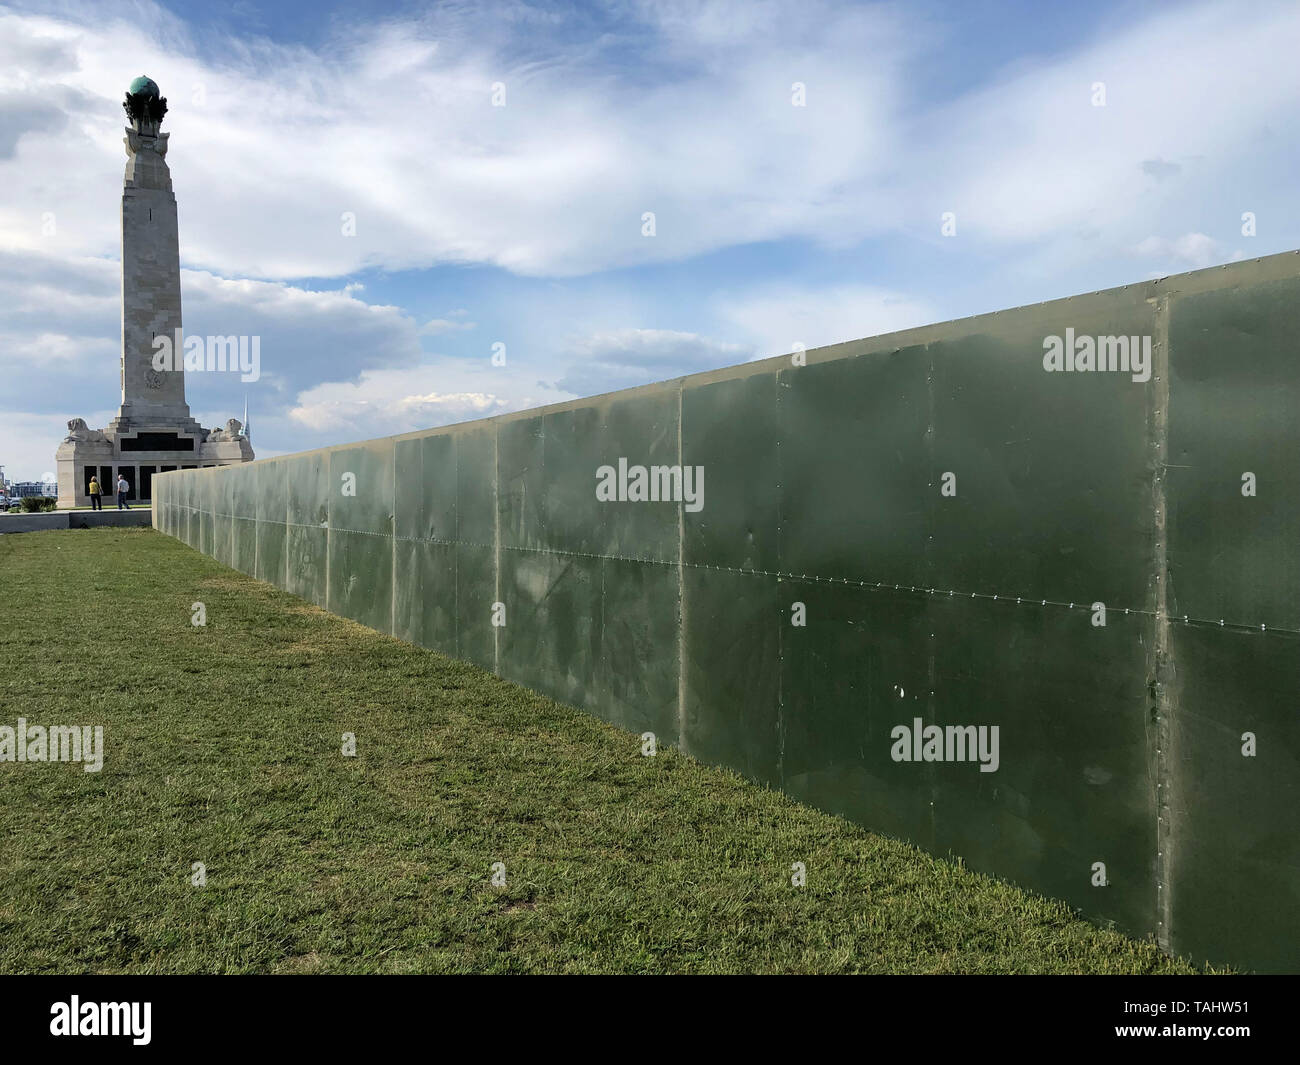 Security fencing put up next to Portsmouth Naval Memorial on Southsea Common ahead of visit by US President Donald Trump for the 75th anniversary of D-Day. Stock Photo